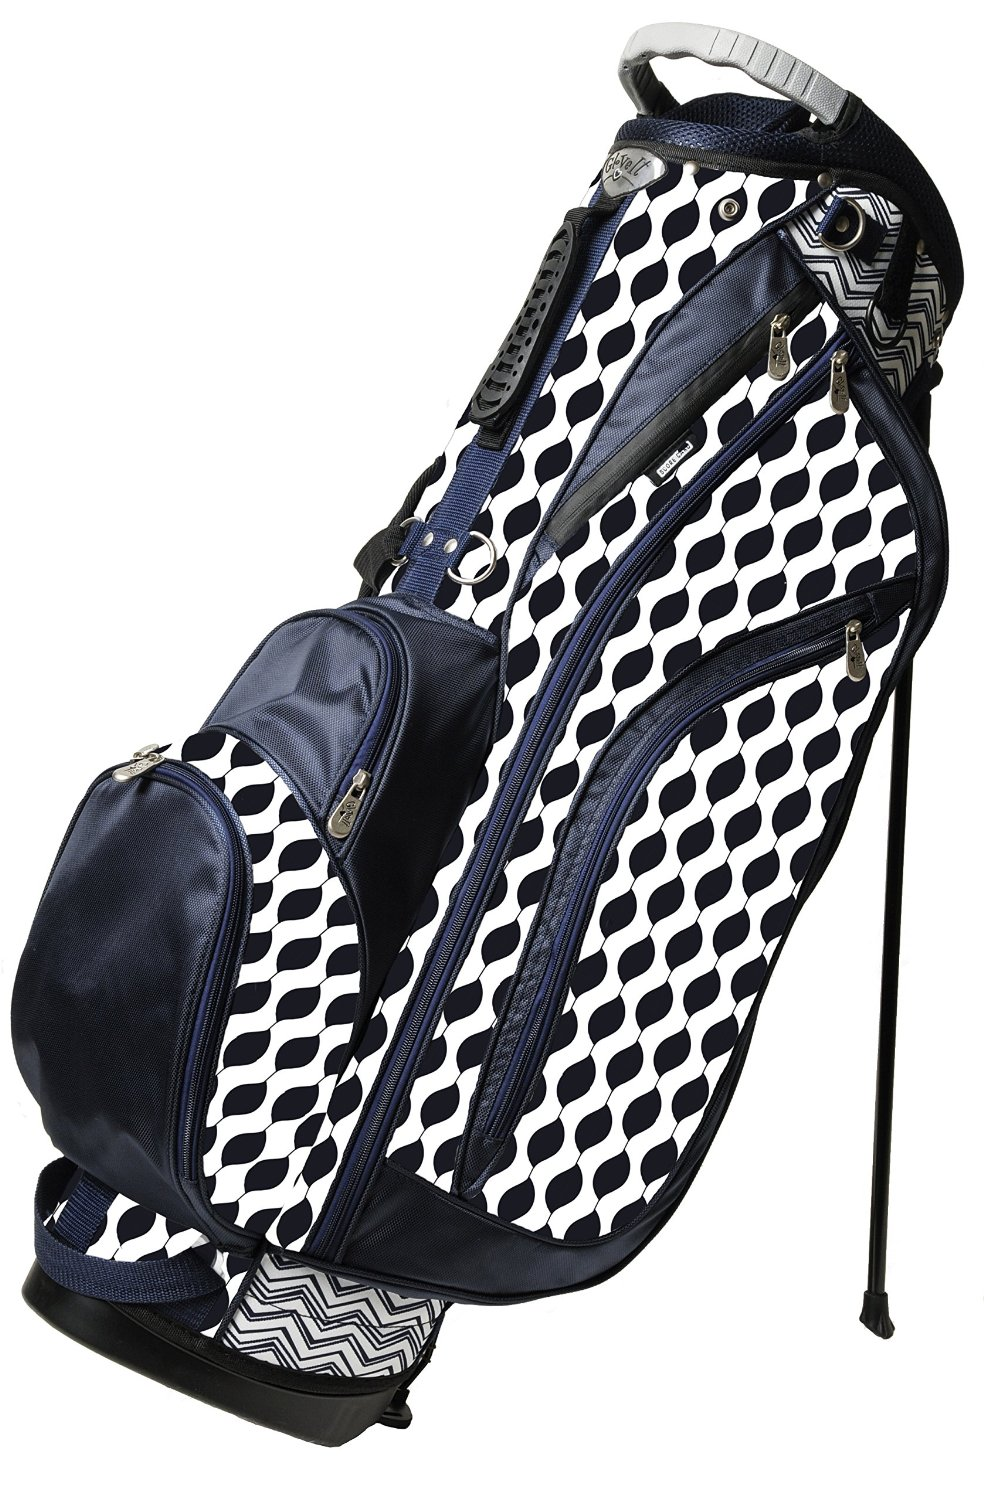 Womens Glove It Golf Stand Bags